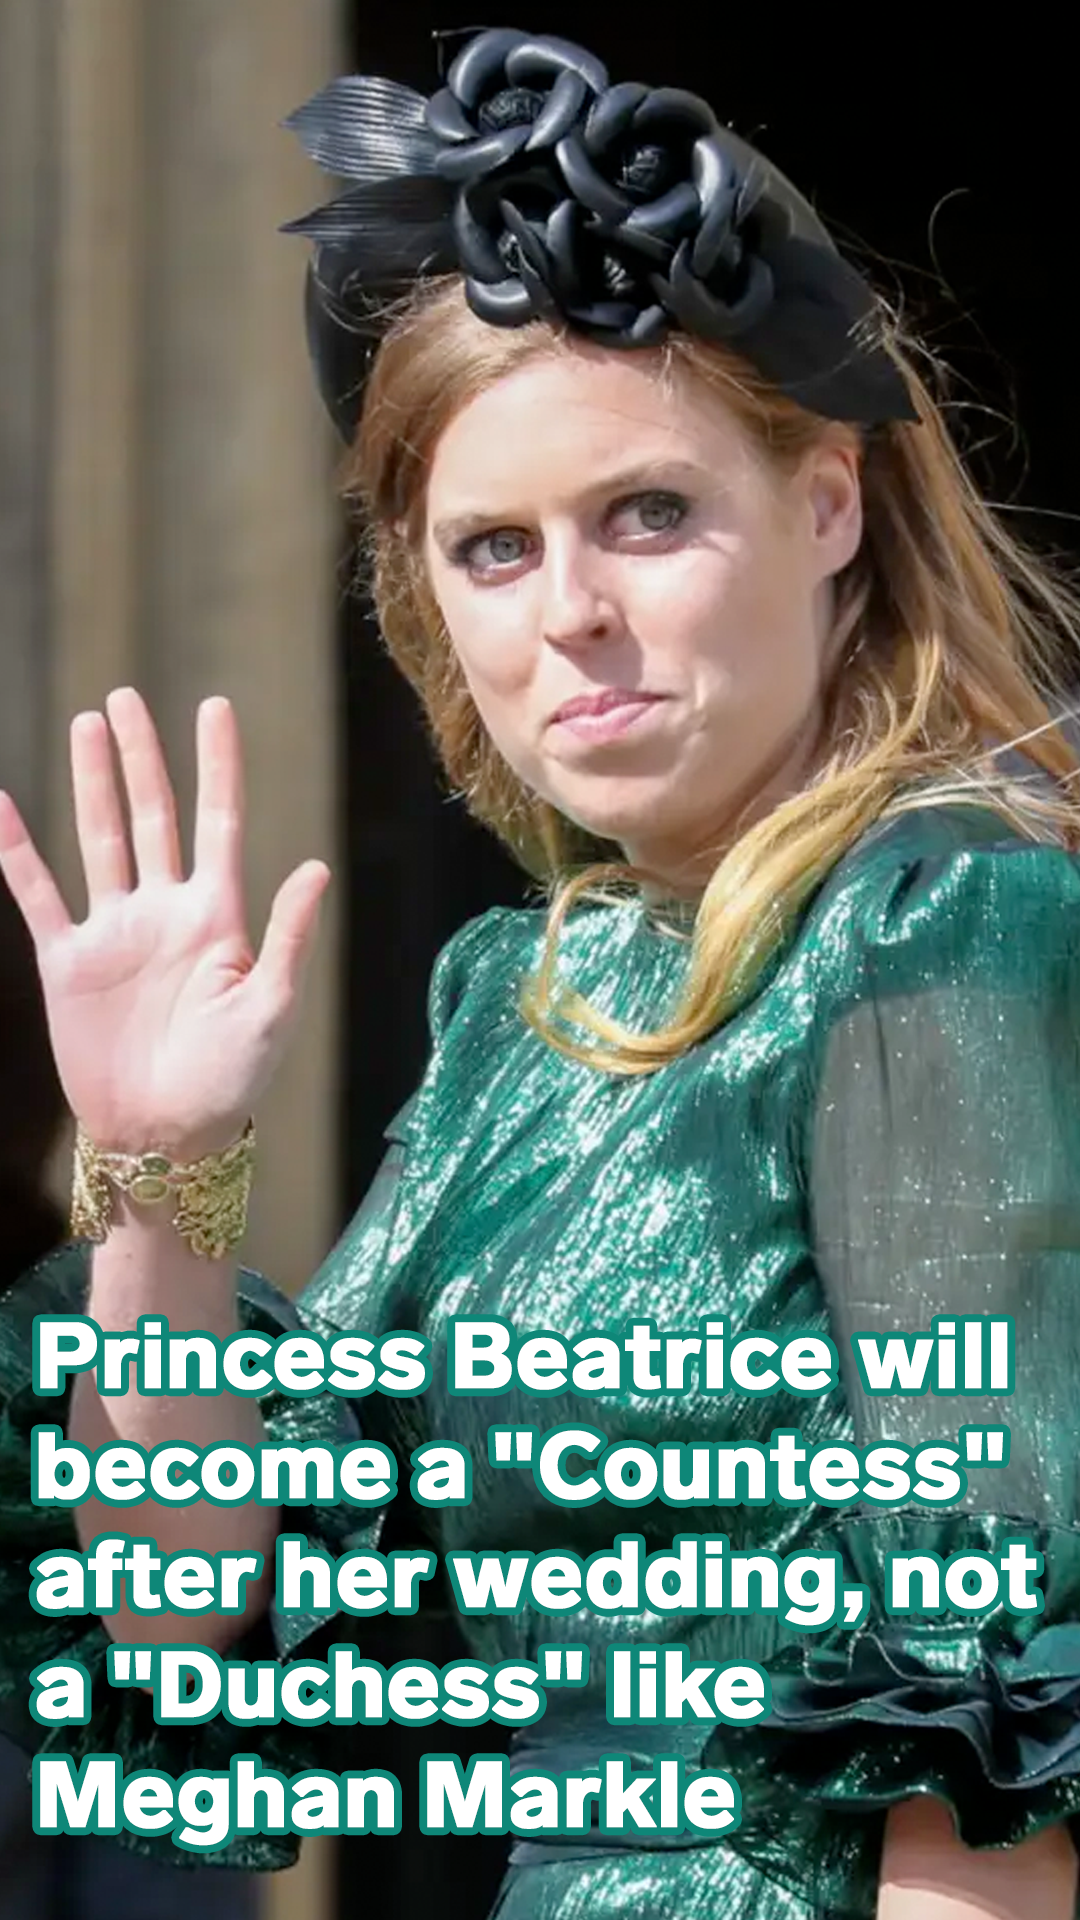 Here's why Princess Beatrice will become a 'Countess' after her royal wedding, not a 'Duchess' like Meghan Markle